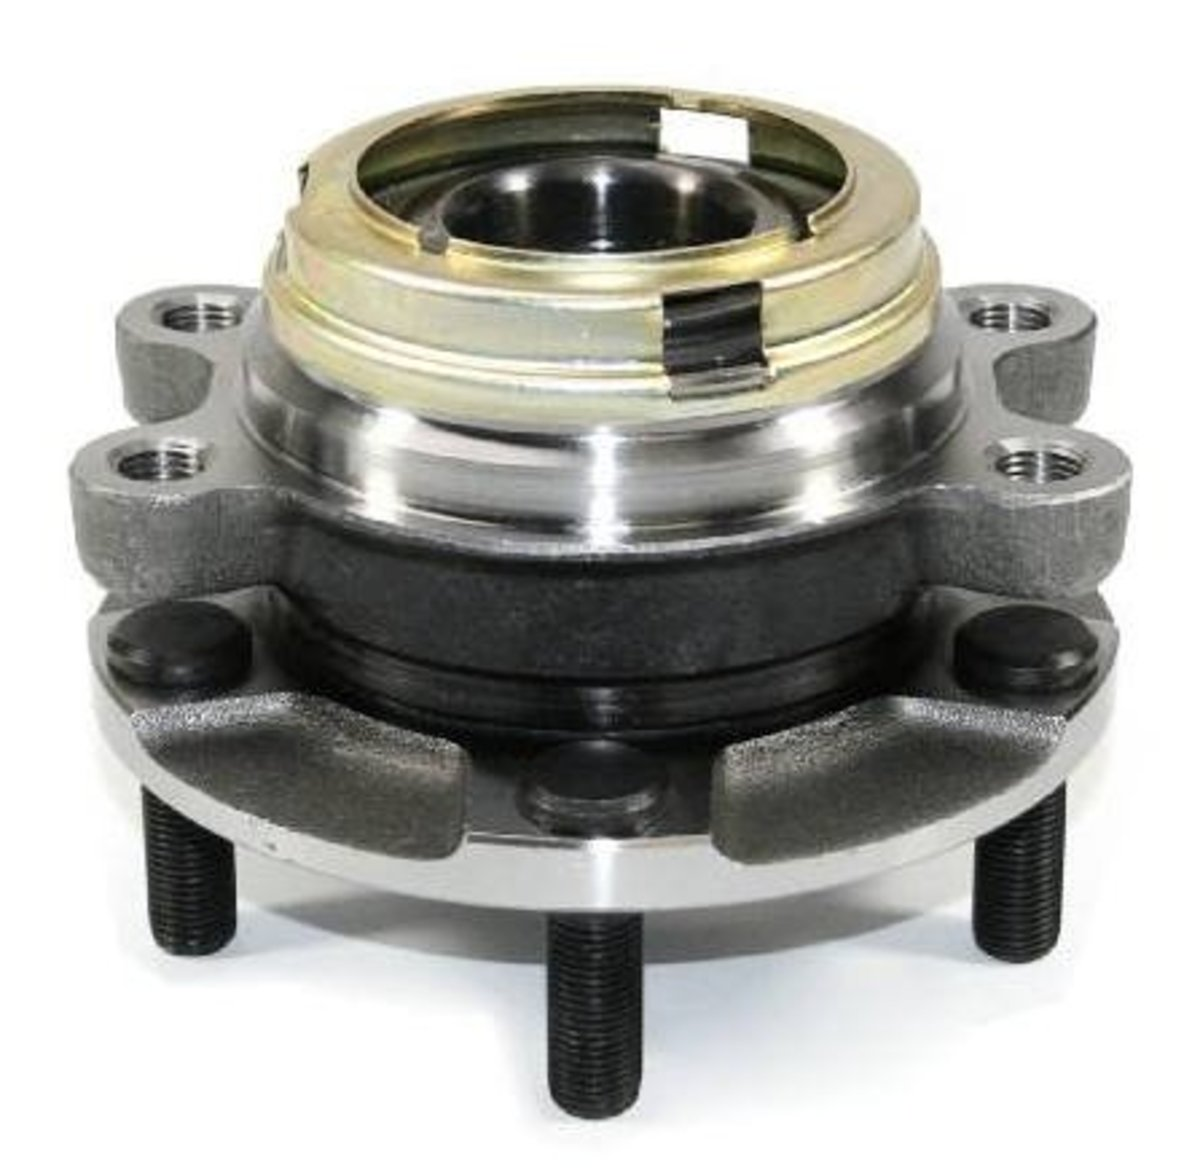 DIY Nissan Murano/Quest Front Wheel Bearing Hub Replacement